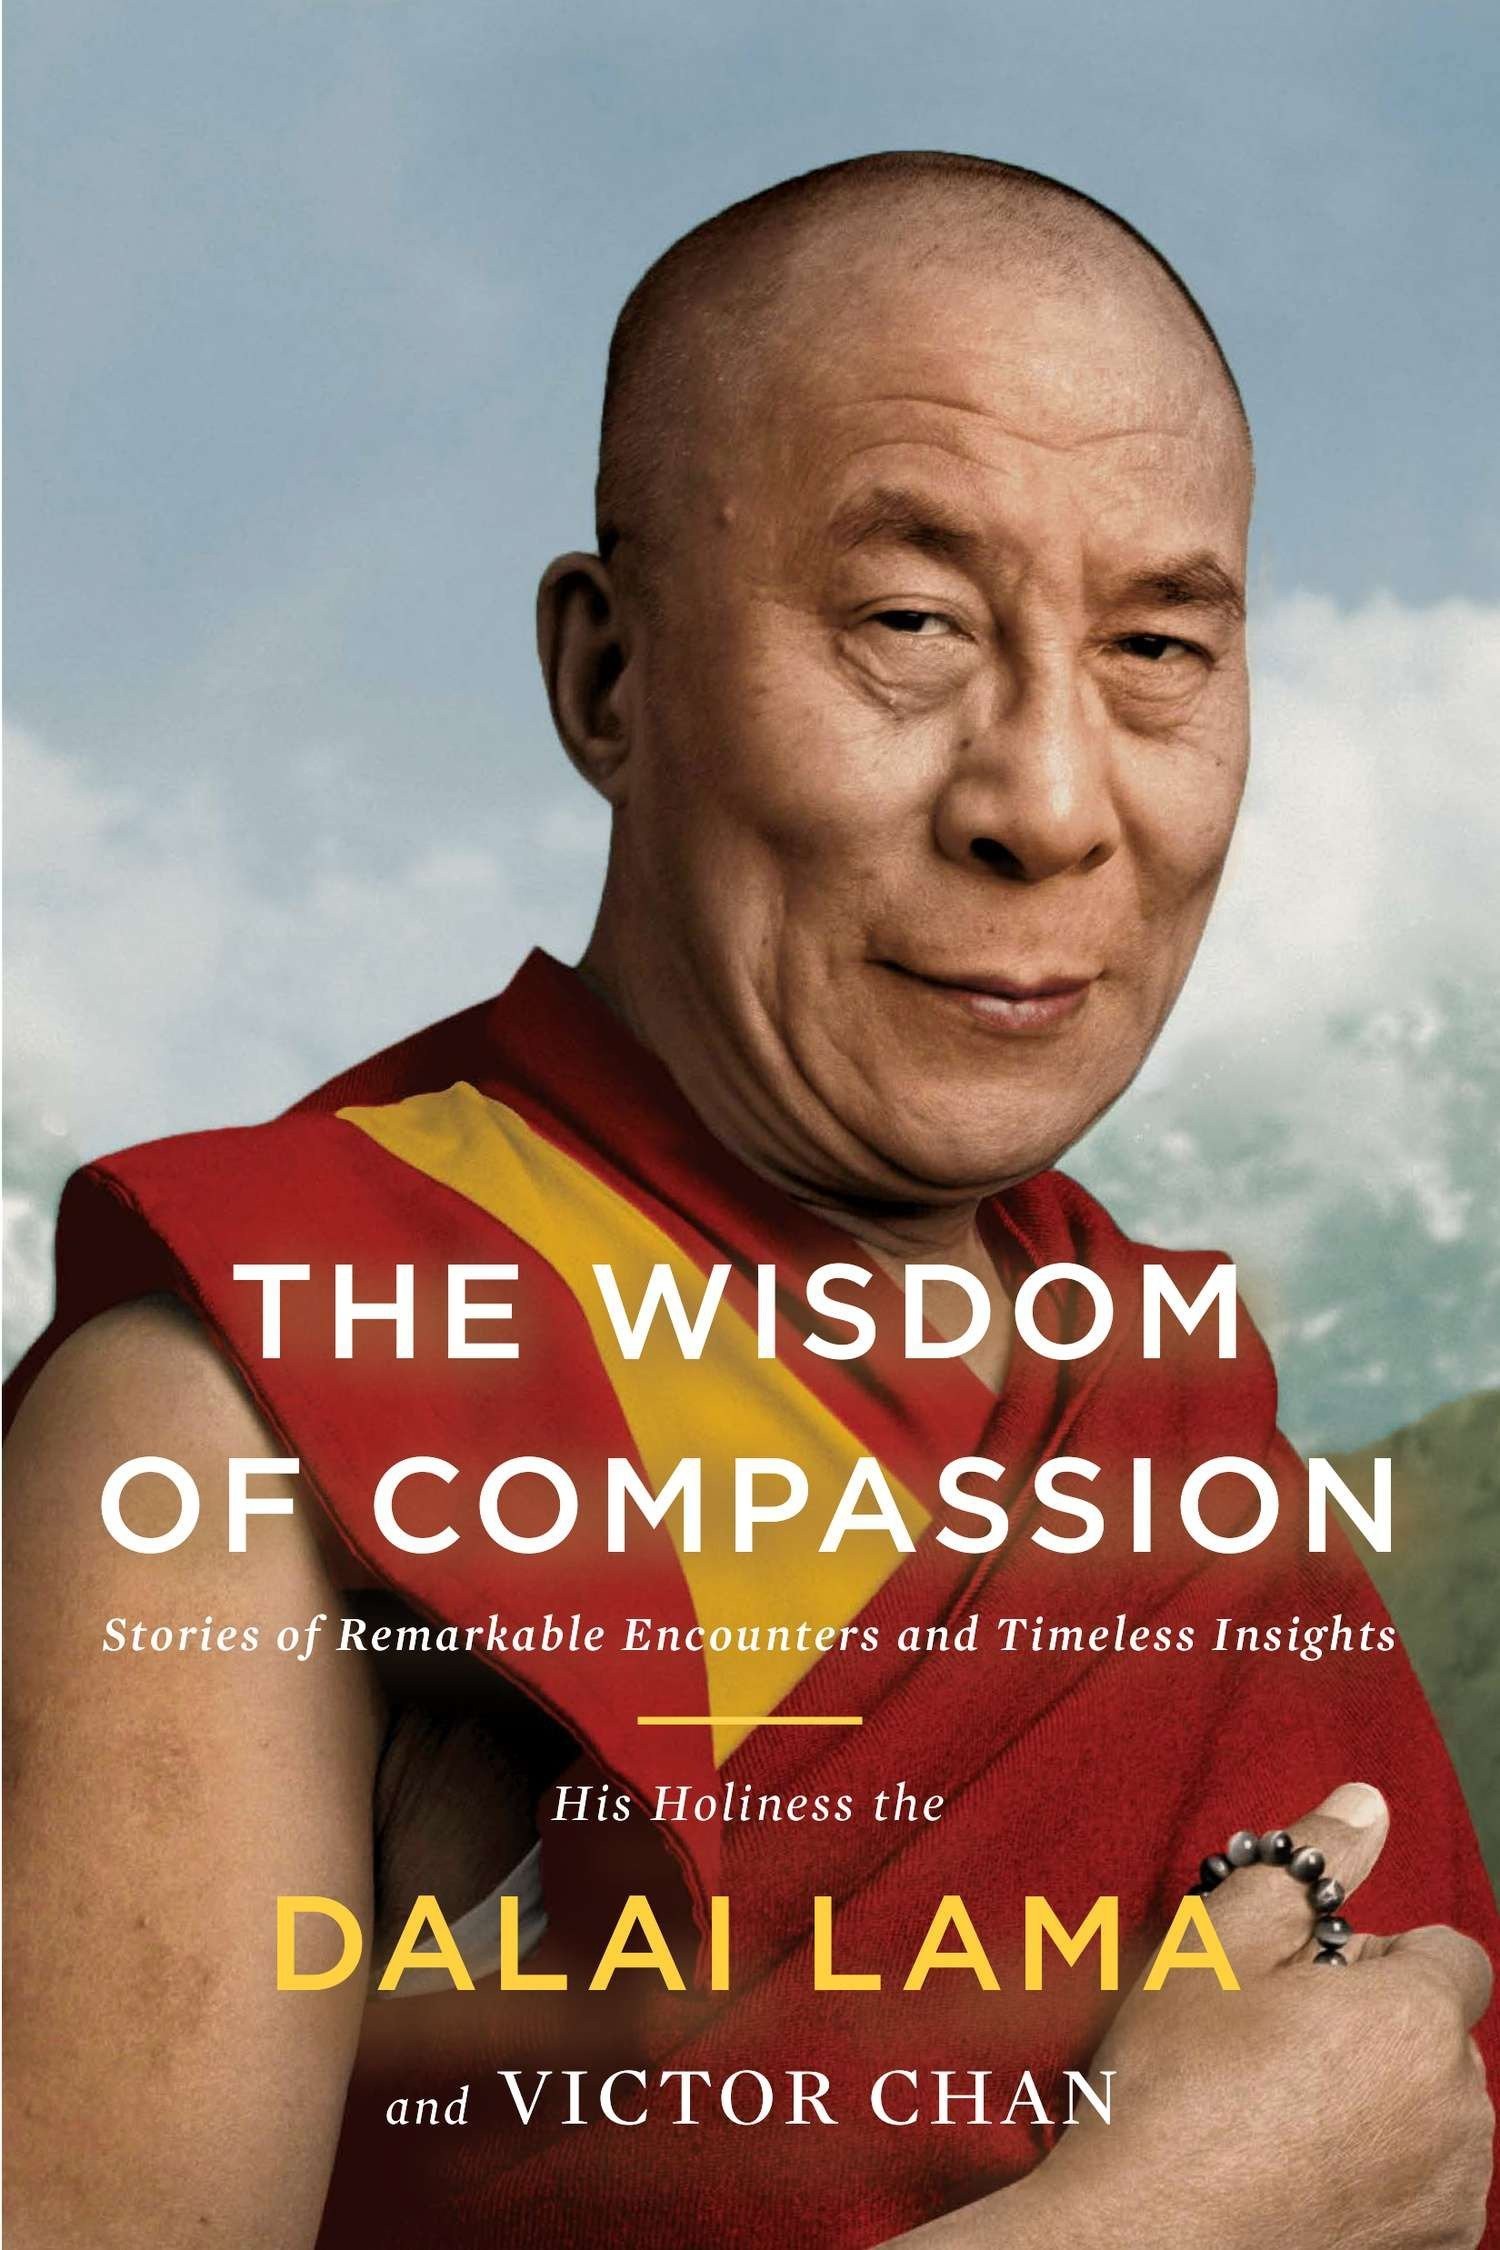 The Wisdom of Compassion: Stories of Remarkable Encounters and